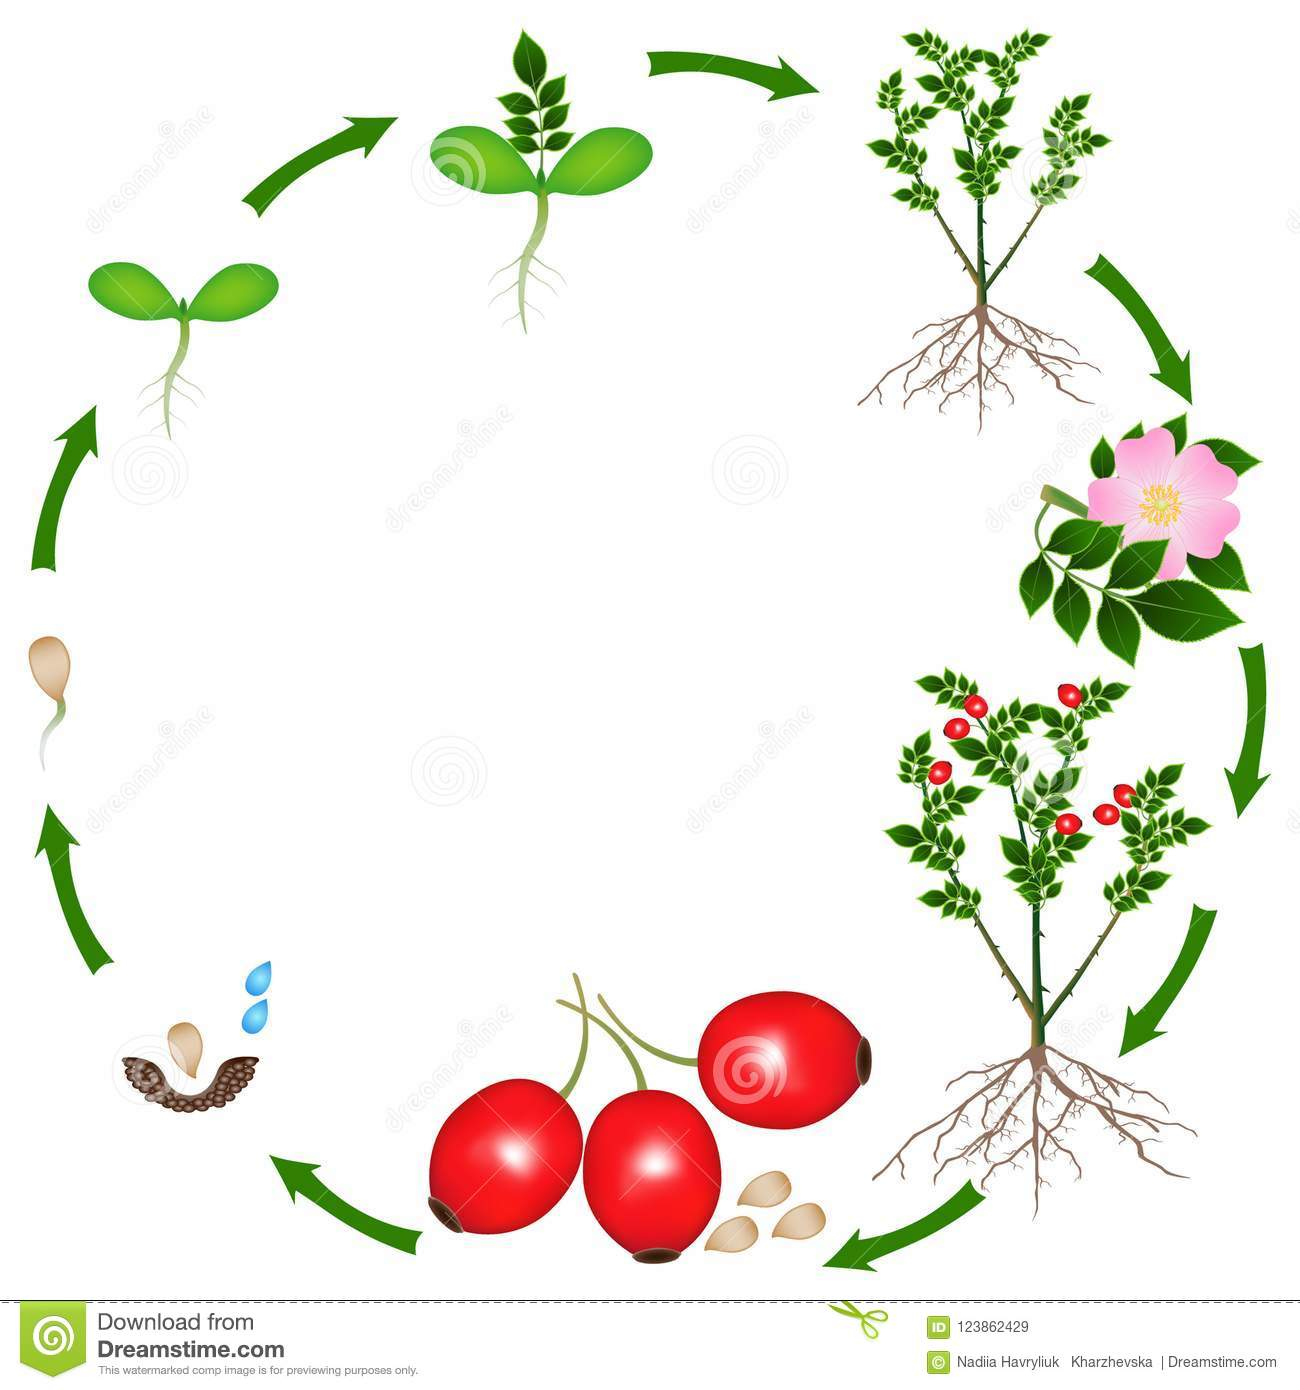 Life Cycle Of A Rose Hips Plant On A White Background